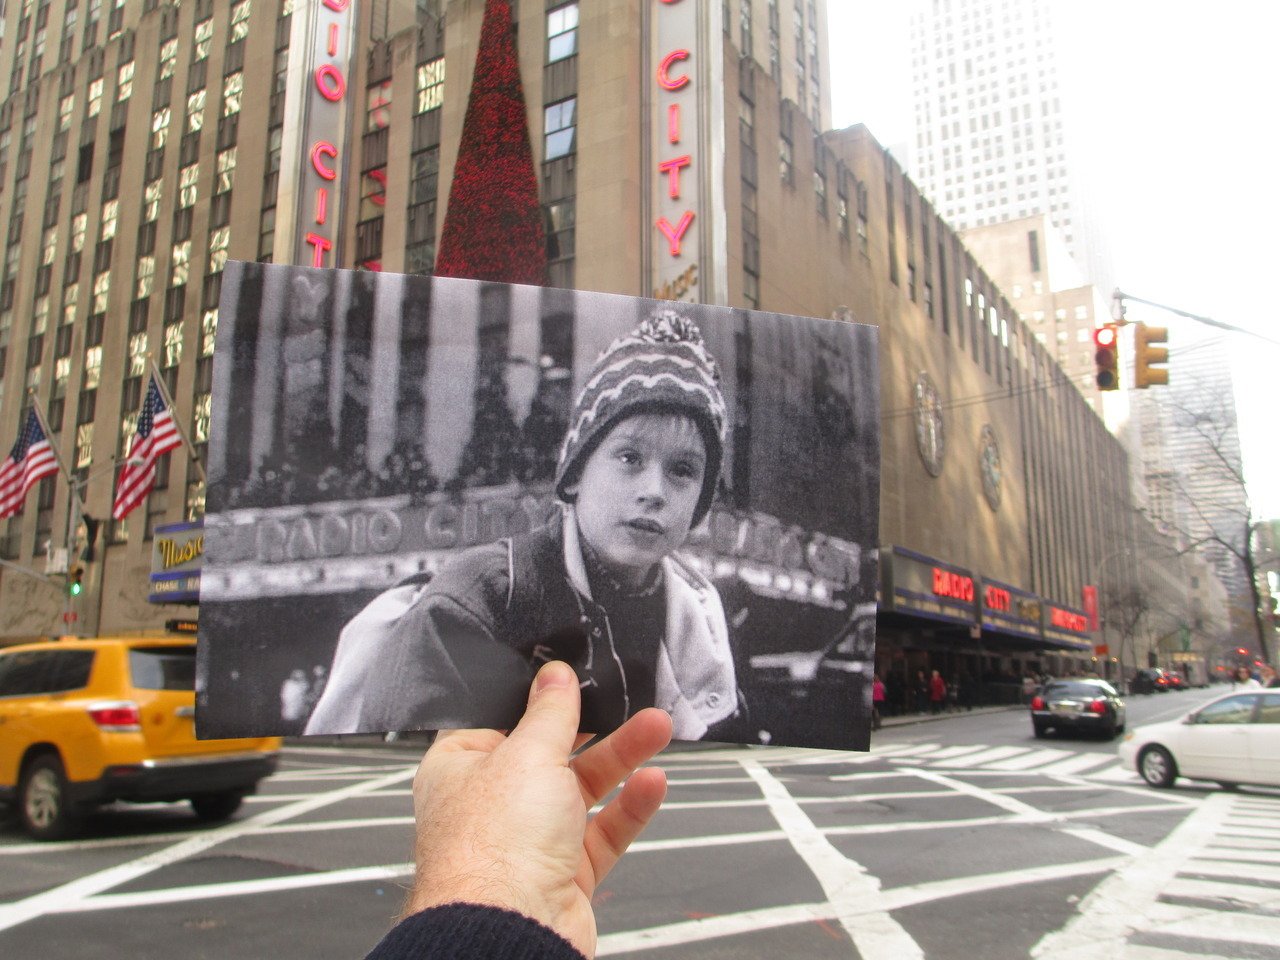 Home Alone 2: Lost in New York (1992) Image: 244 Posted by: @Moloknee  A limited number (10) of signed and numbered prints are now available for purchase by clicking the button below the images or emailing me here.